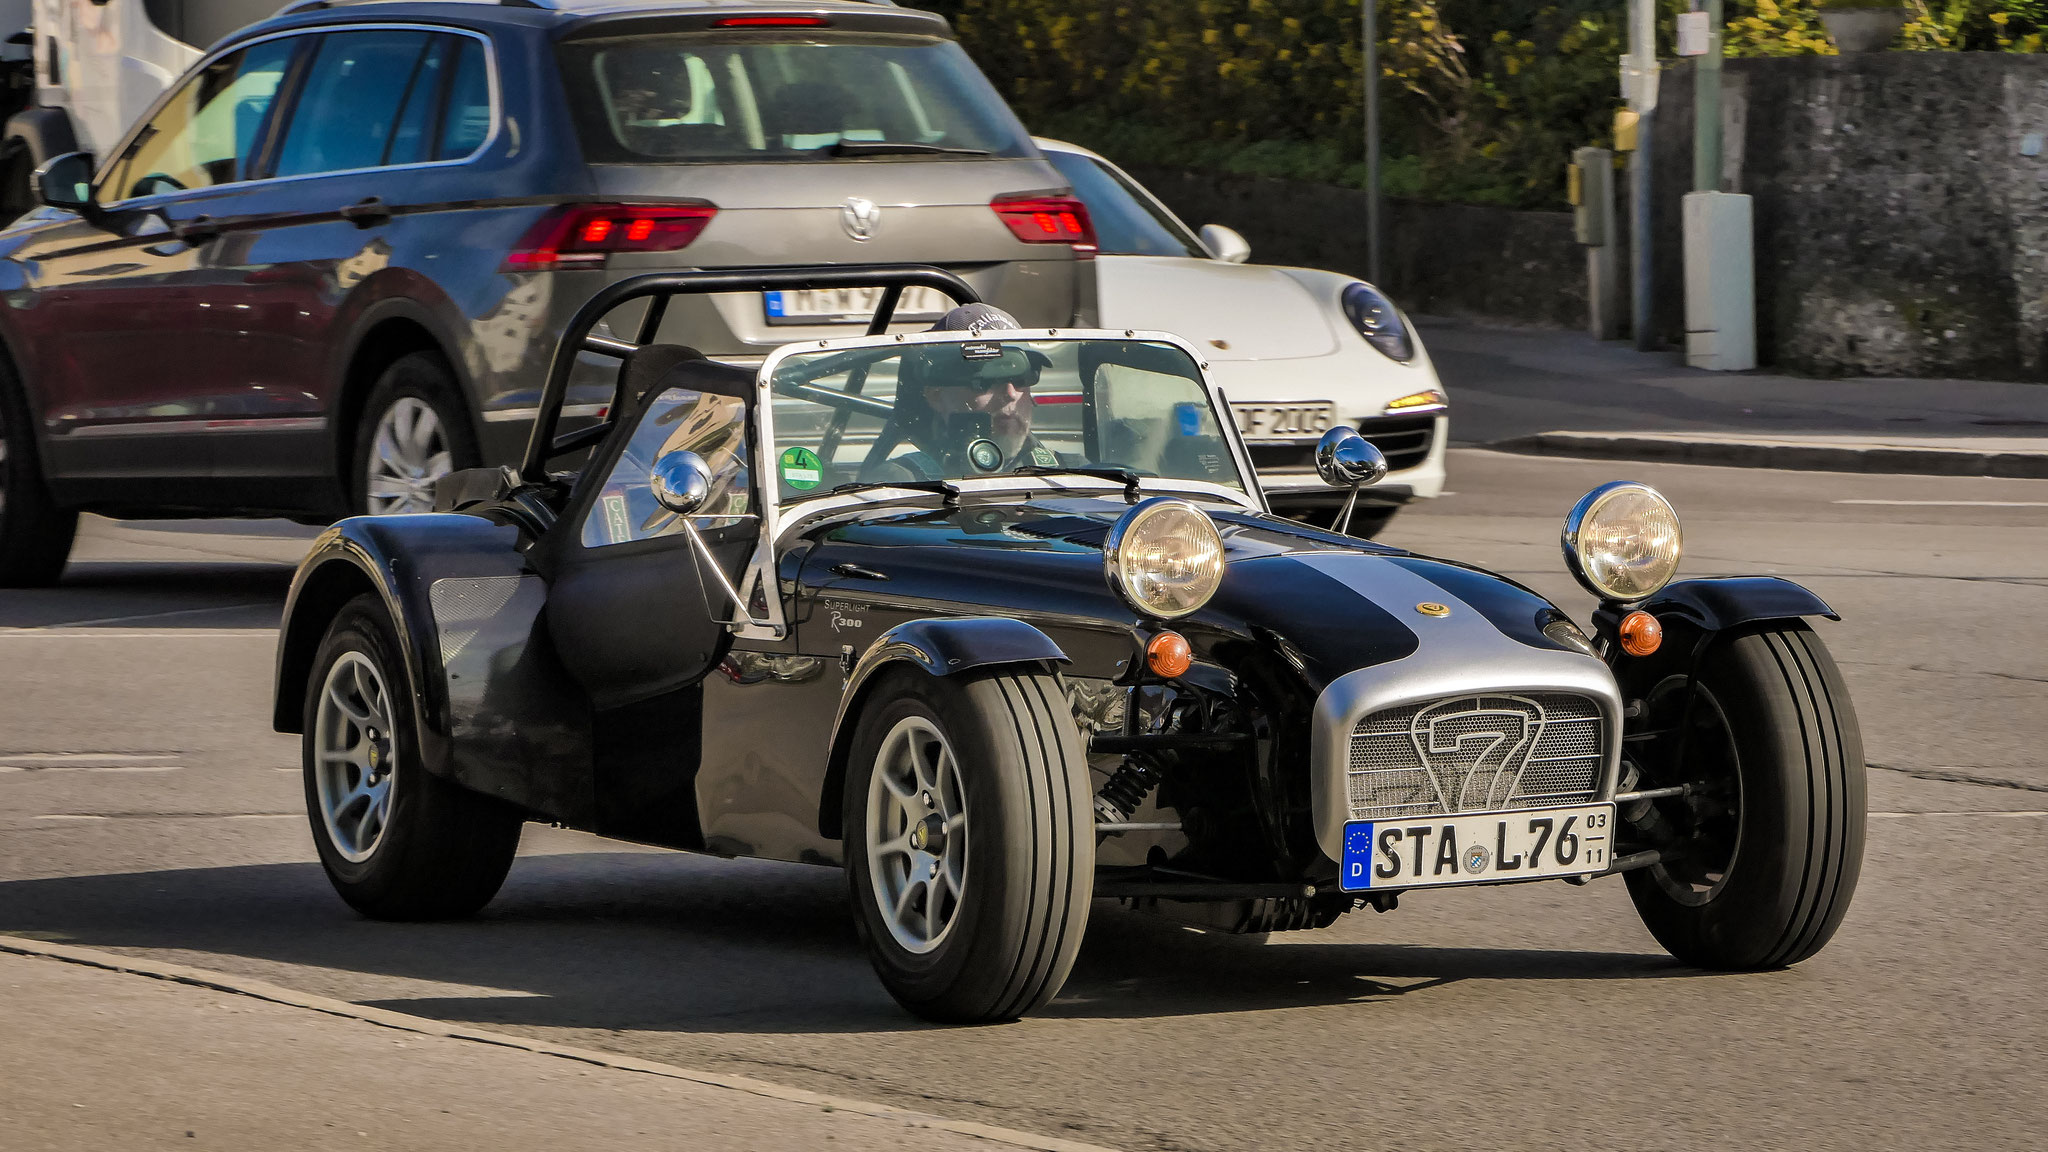 Caterham 7 Superlight R300 - STA-L-76